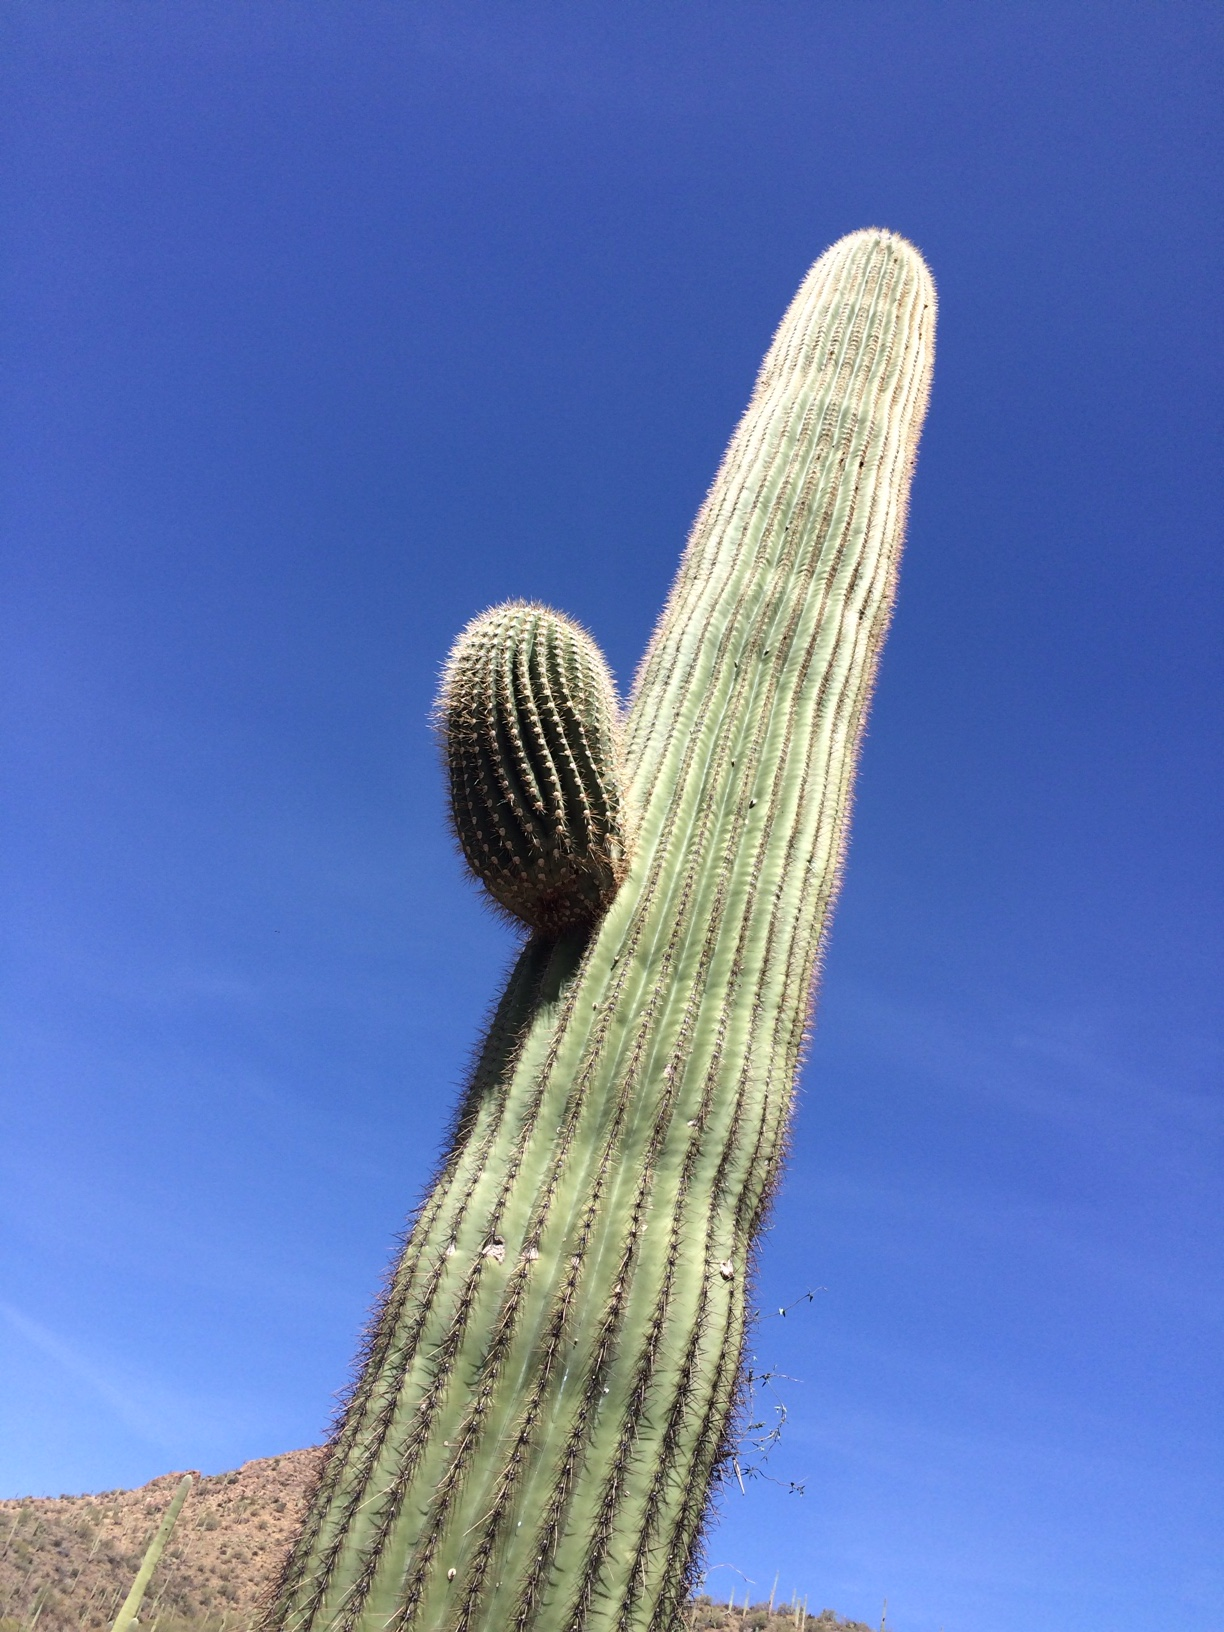 Saguaro with one bloom